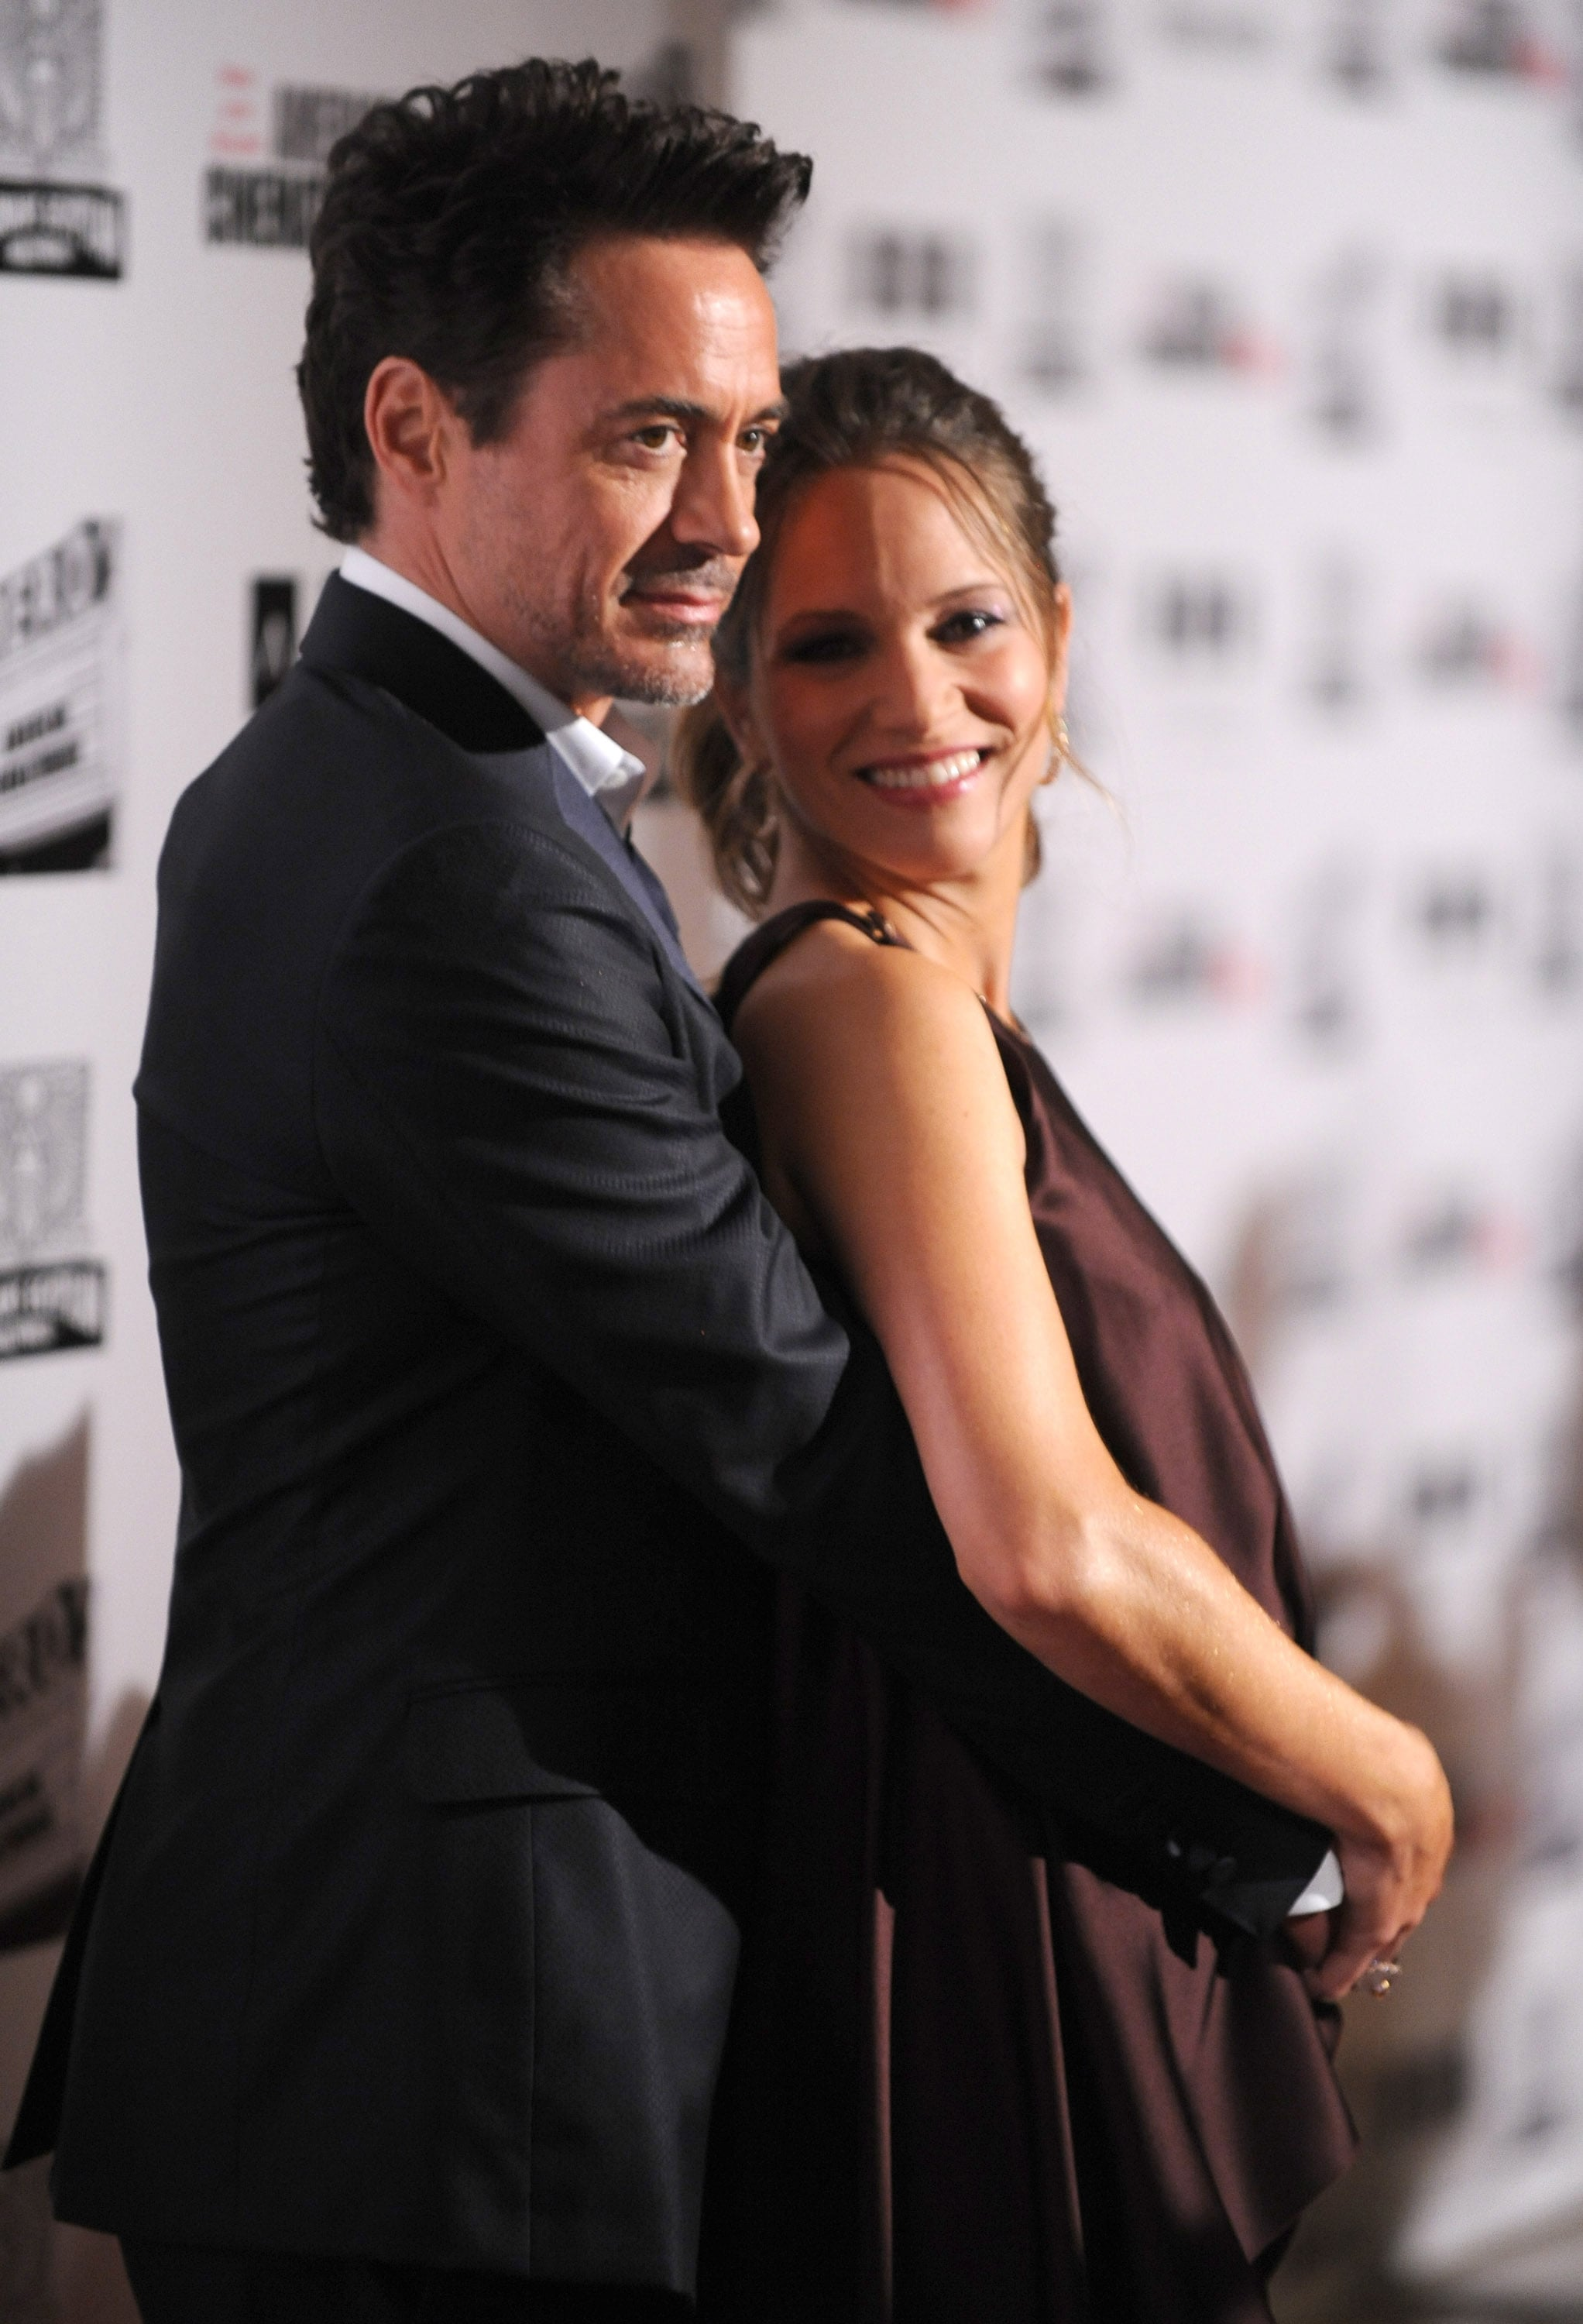 Robert Downey Jr. hugged his pregnant wife.